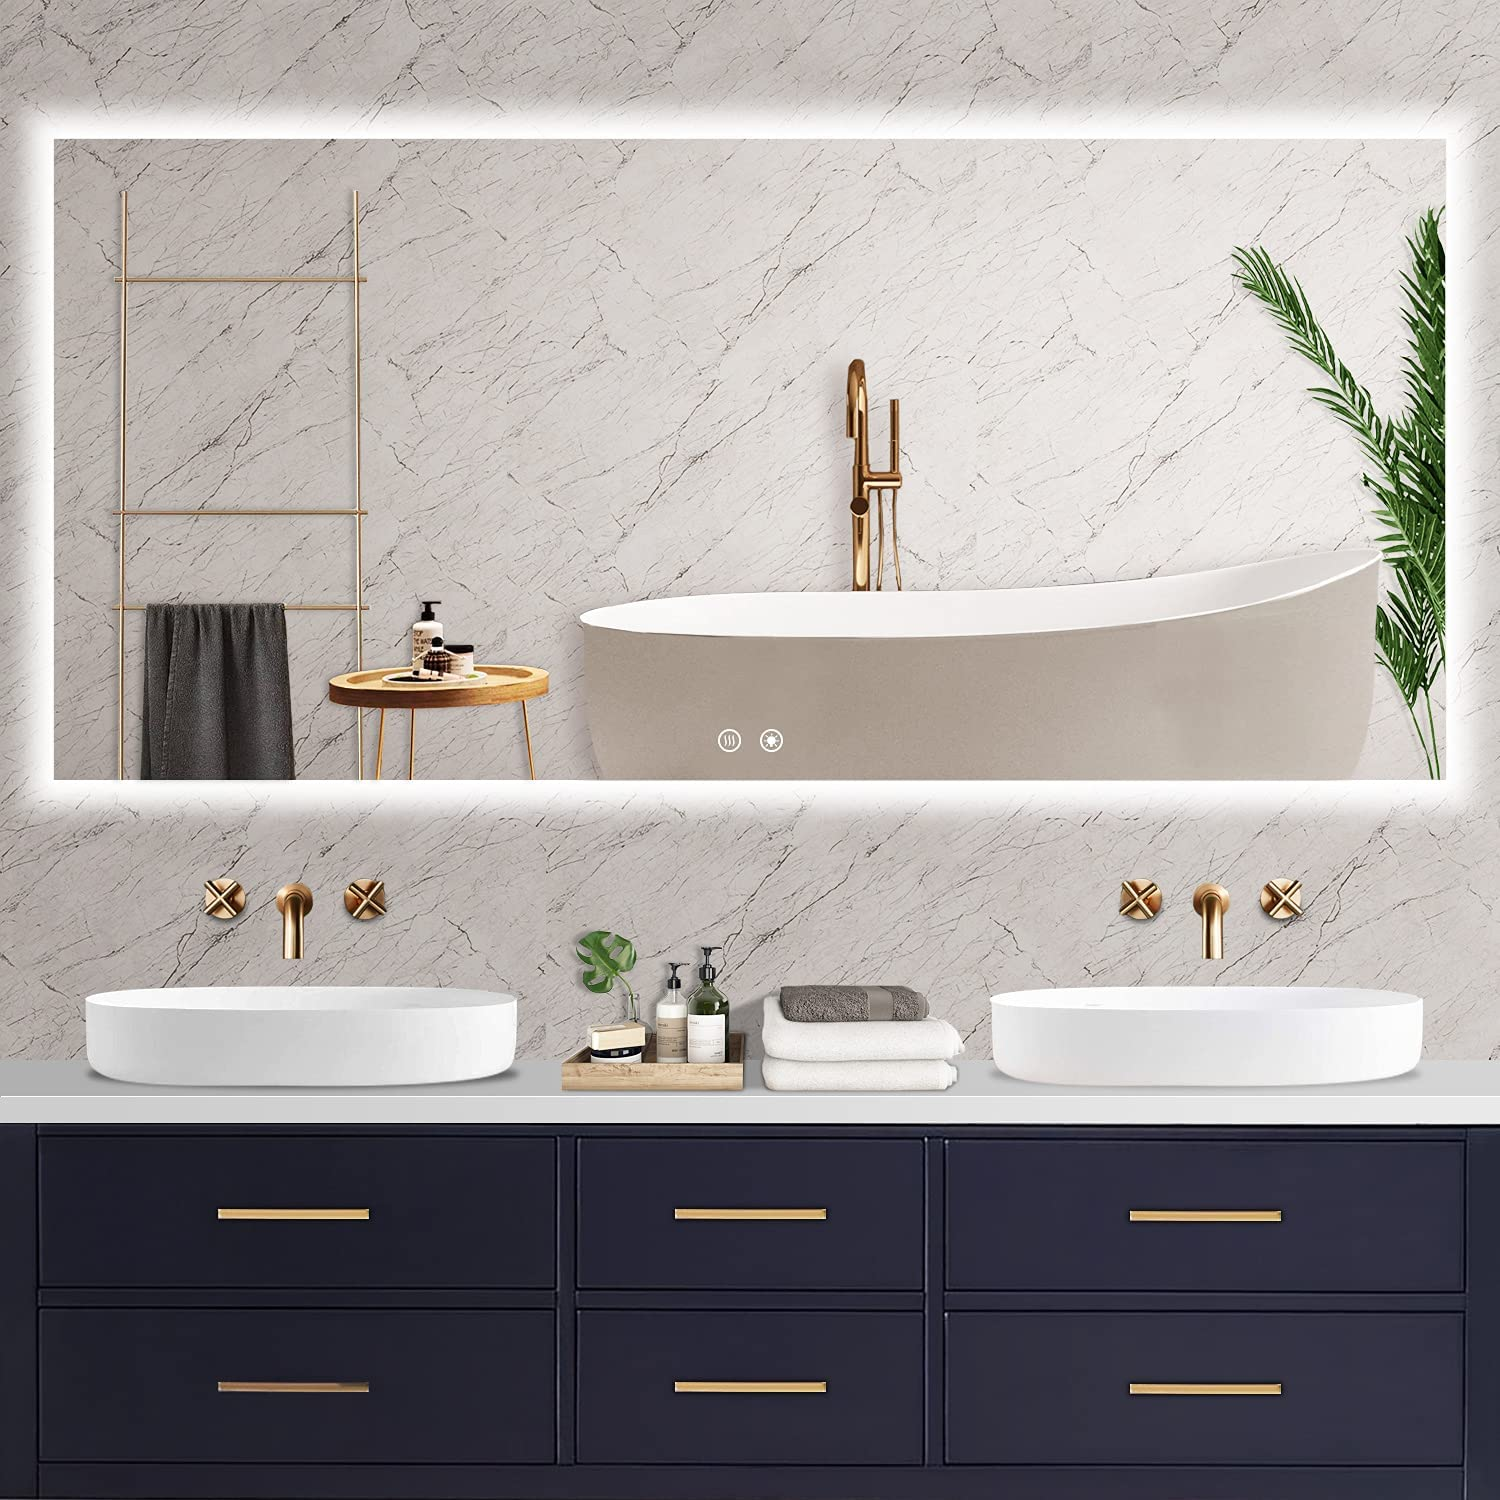 SNHOOR 60x28 Inch Backlit Bathroom Cheap Max 68% OFF super special price with Anti- LED Mirror Lights